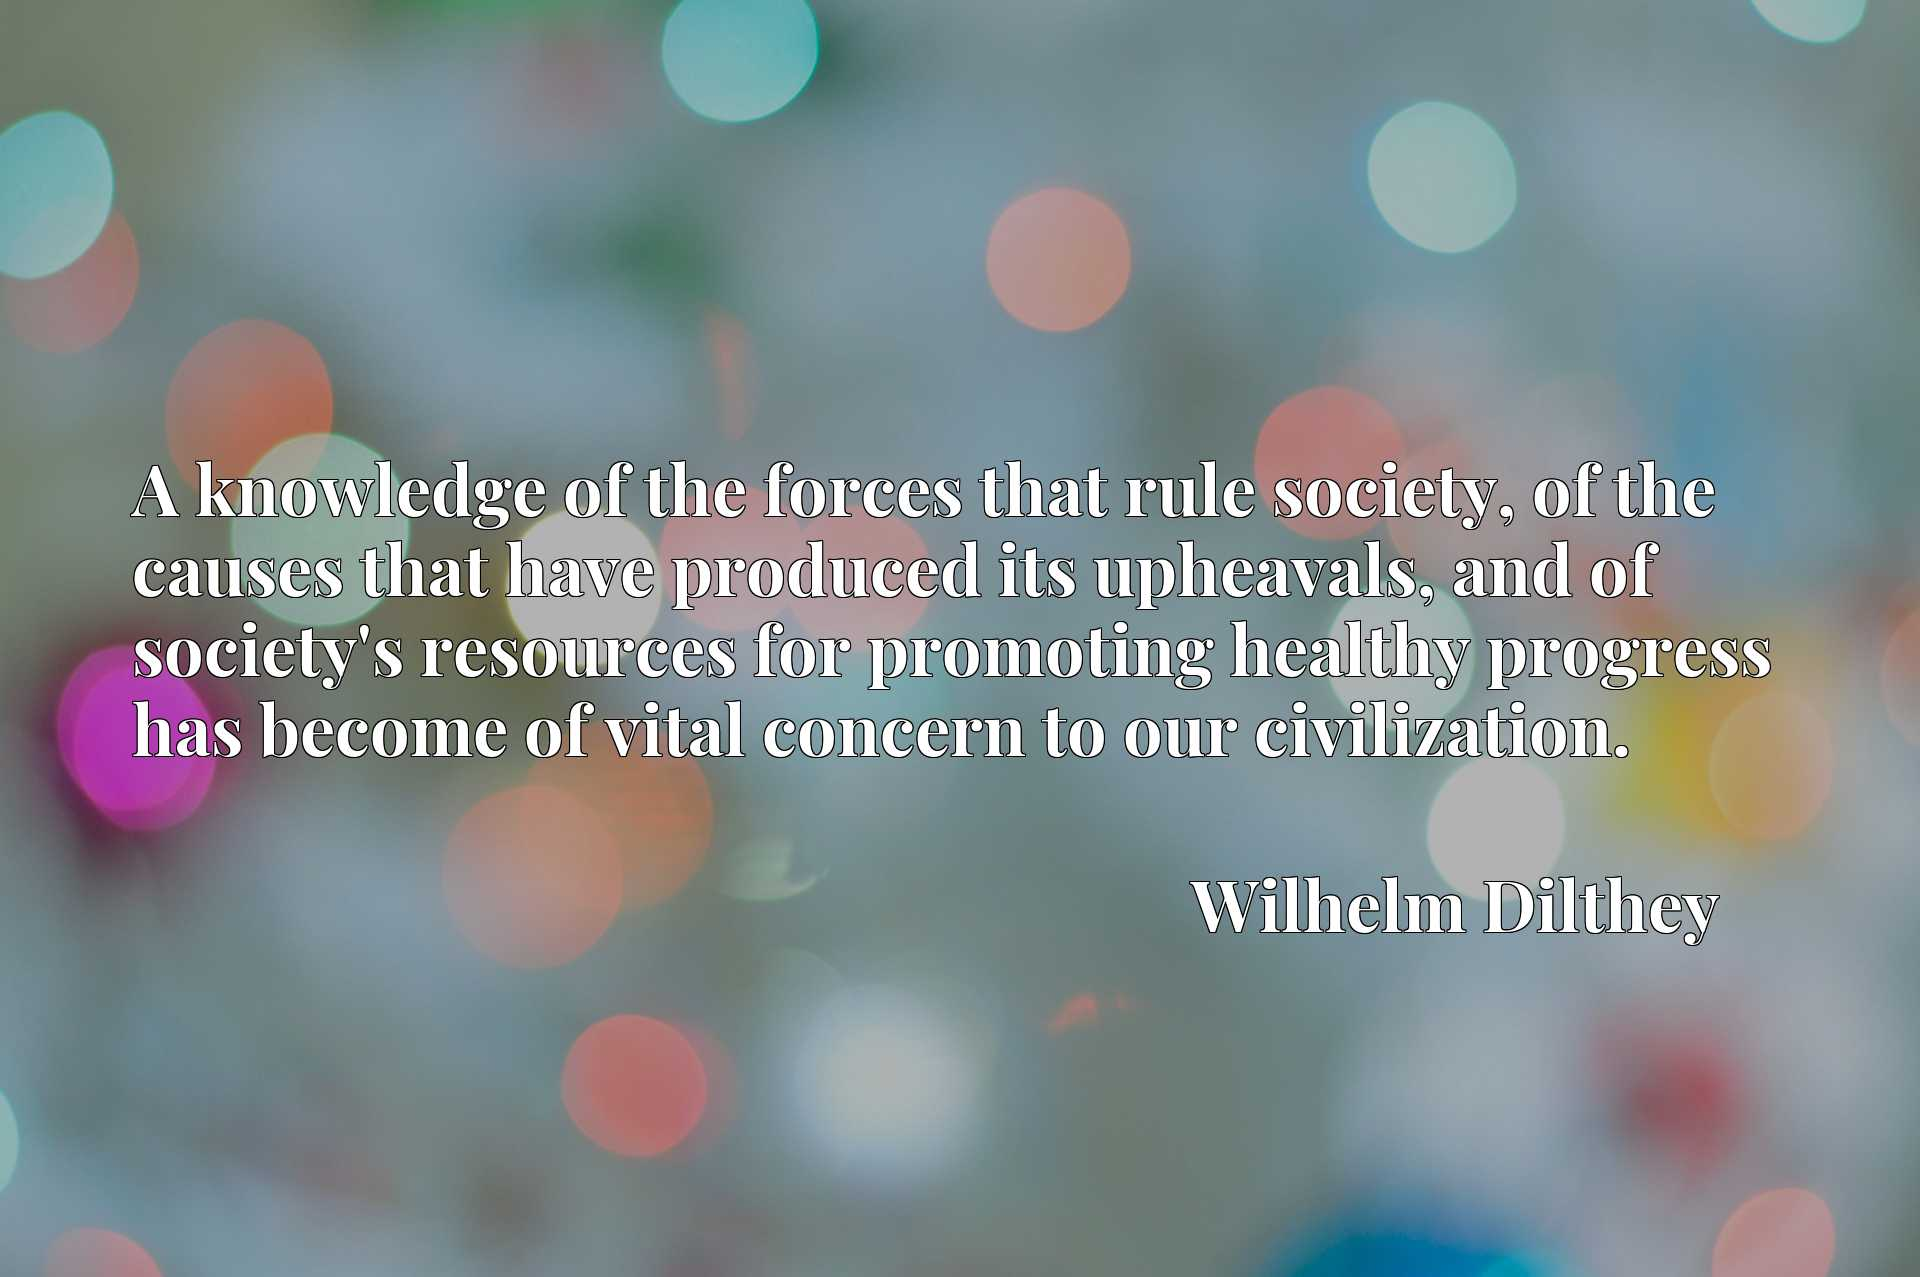 A knowledge of the forces that rule society, of the causes that have produced its upheavals, and of society's resources for promoting healthy progress has become of vital concern to our civilization.